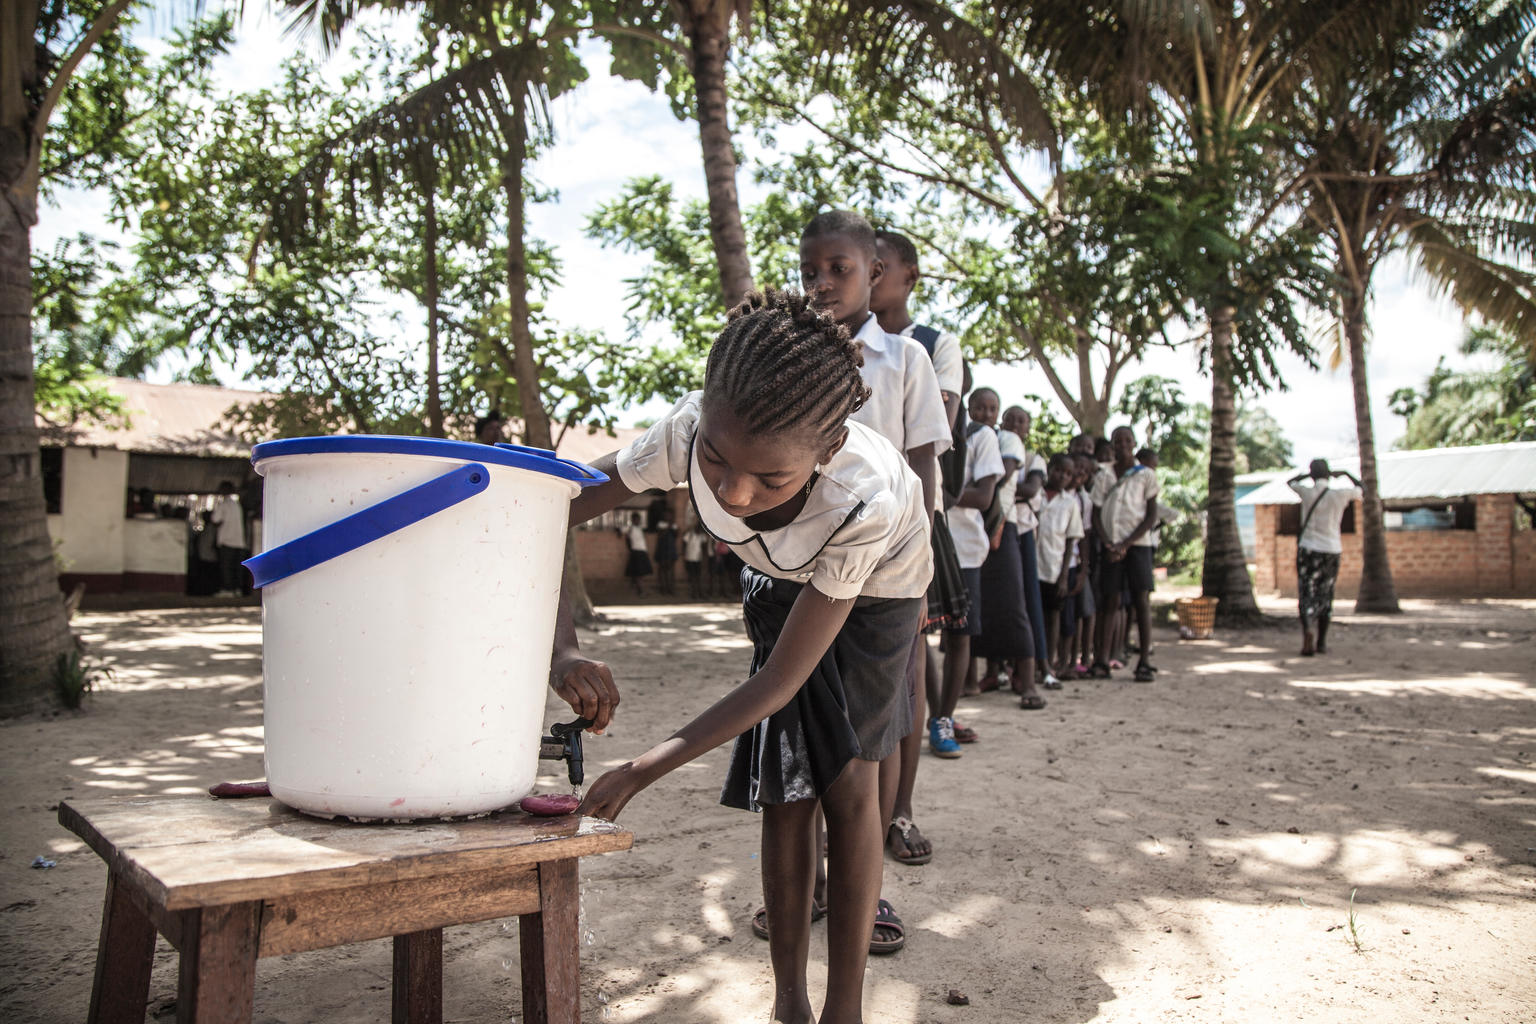 A child at the head of a long line of school children behind her washes her hands by the tap of a water bucket on a small wooden table in a coconut-tree shaded area.